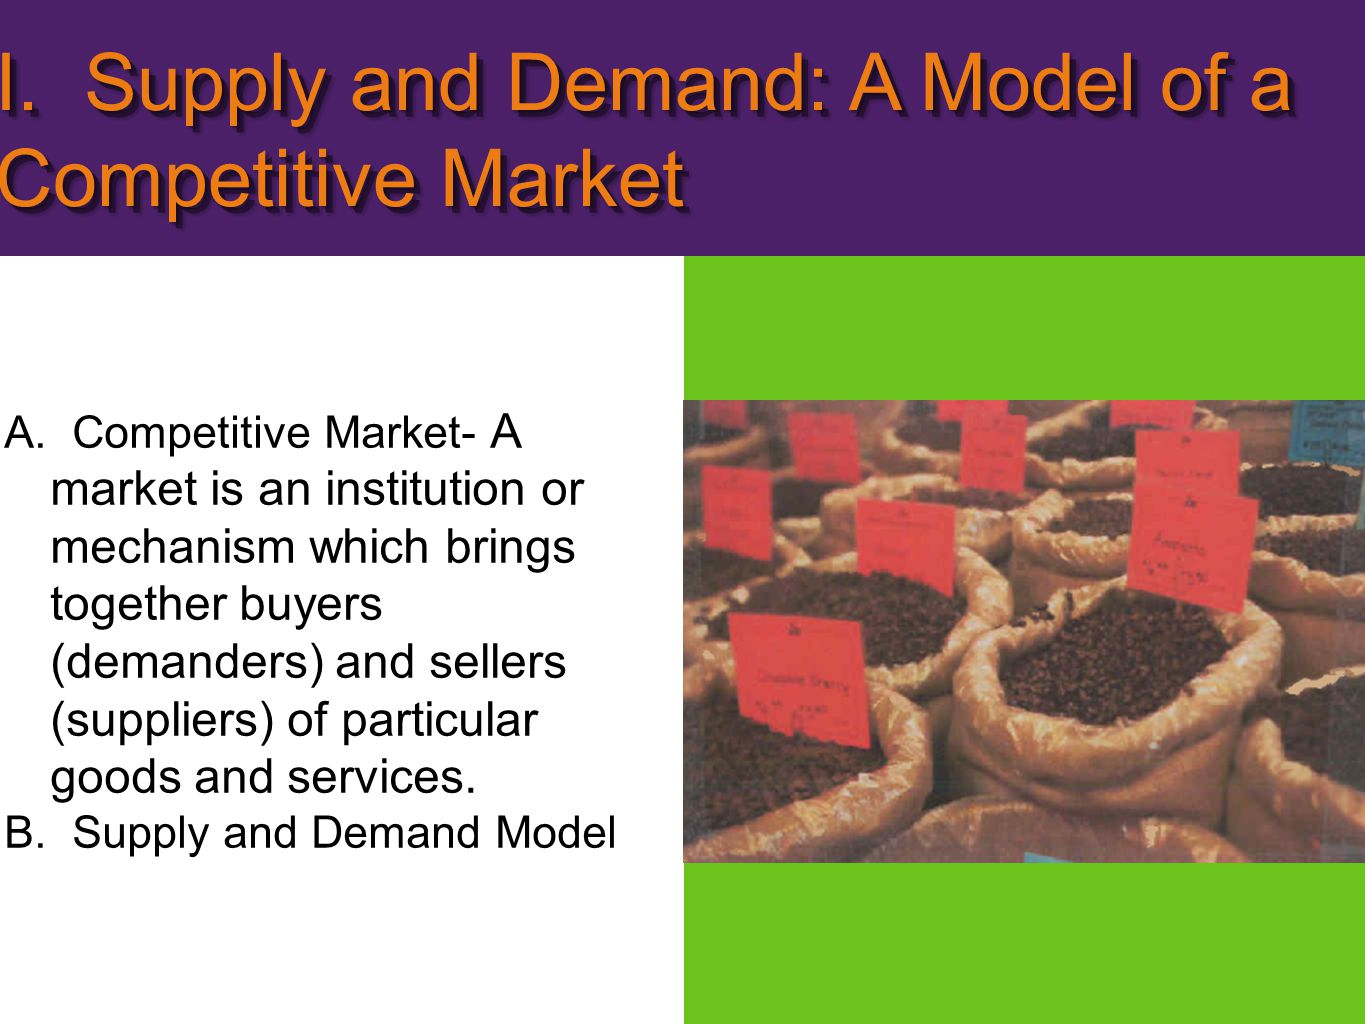 I. Supply and Demand: A Model of a Competitive Market